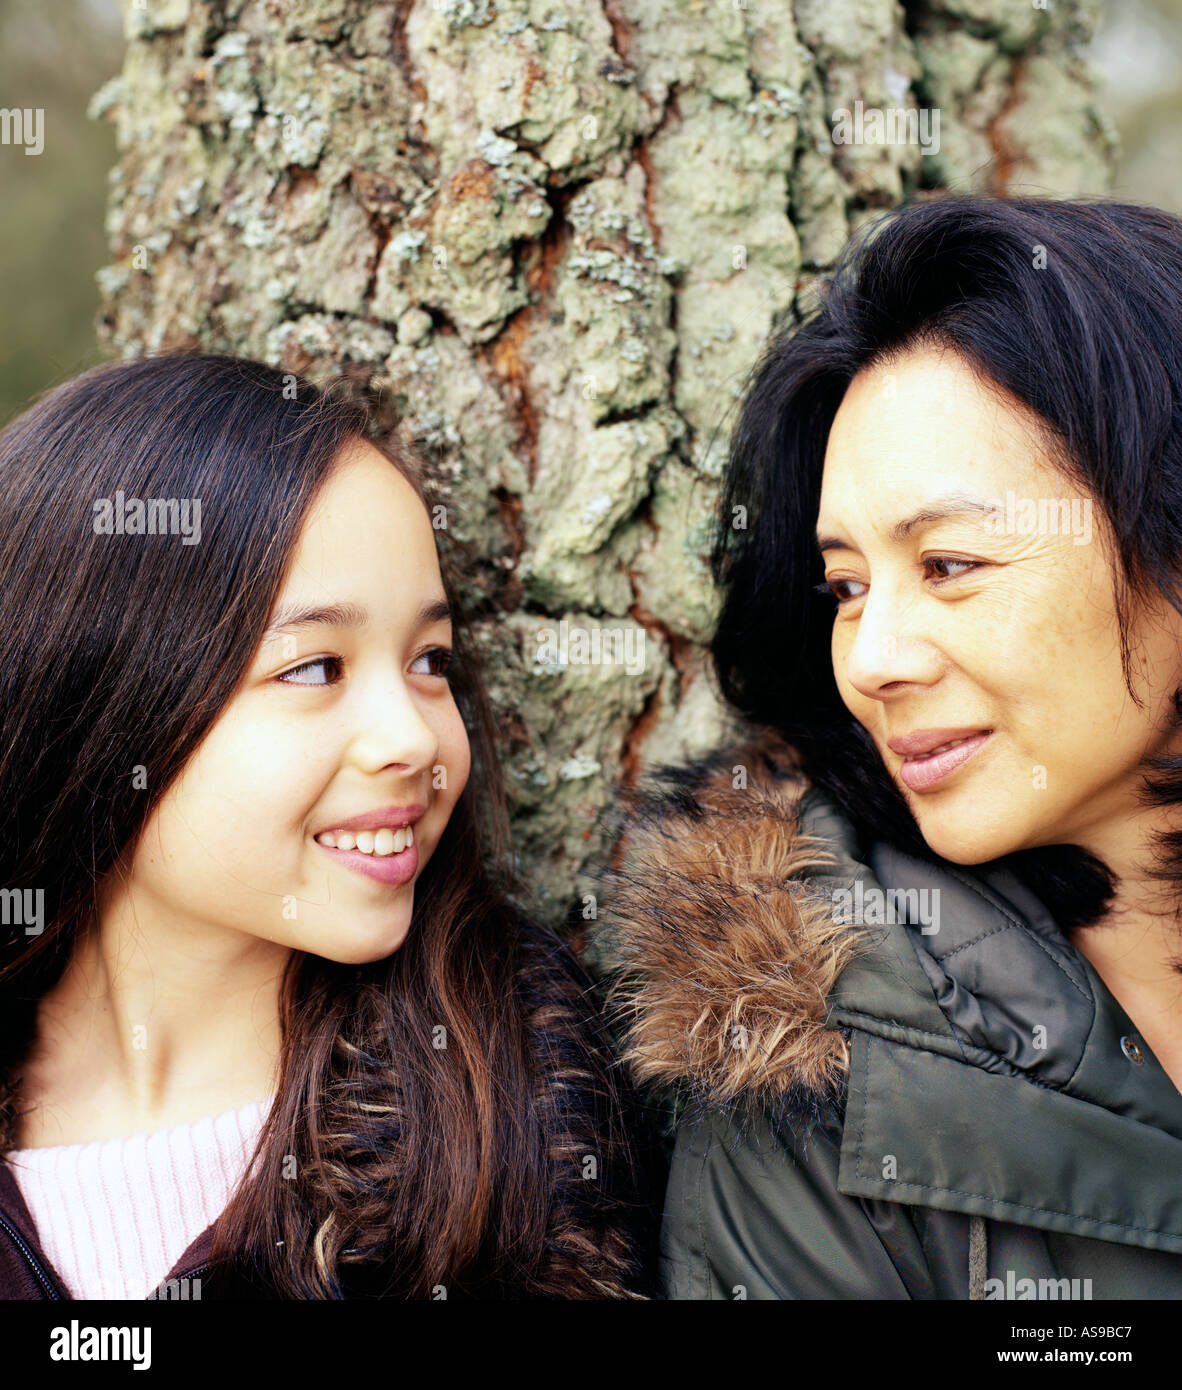 mother and daughter looking towards each other around a tree - Stock Image